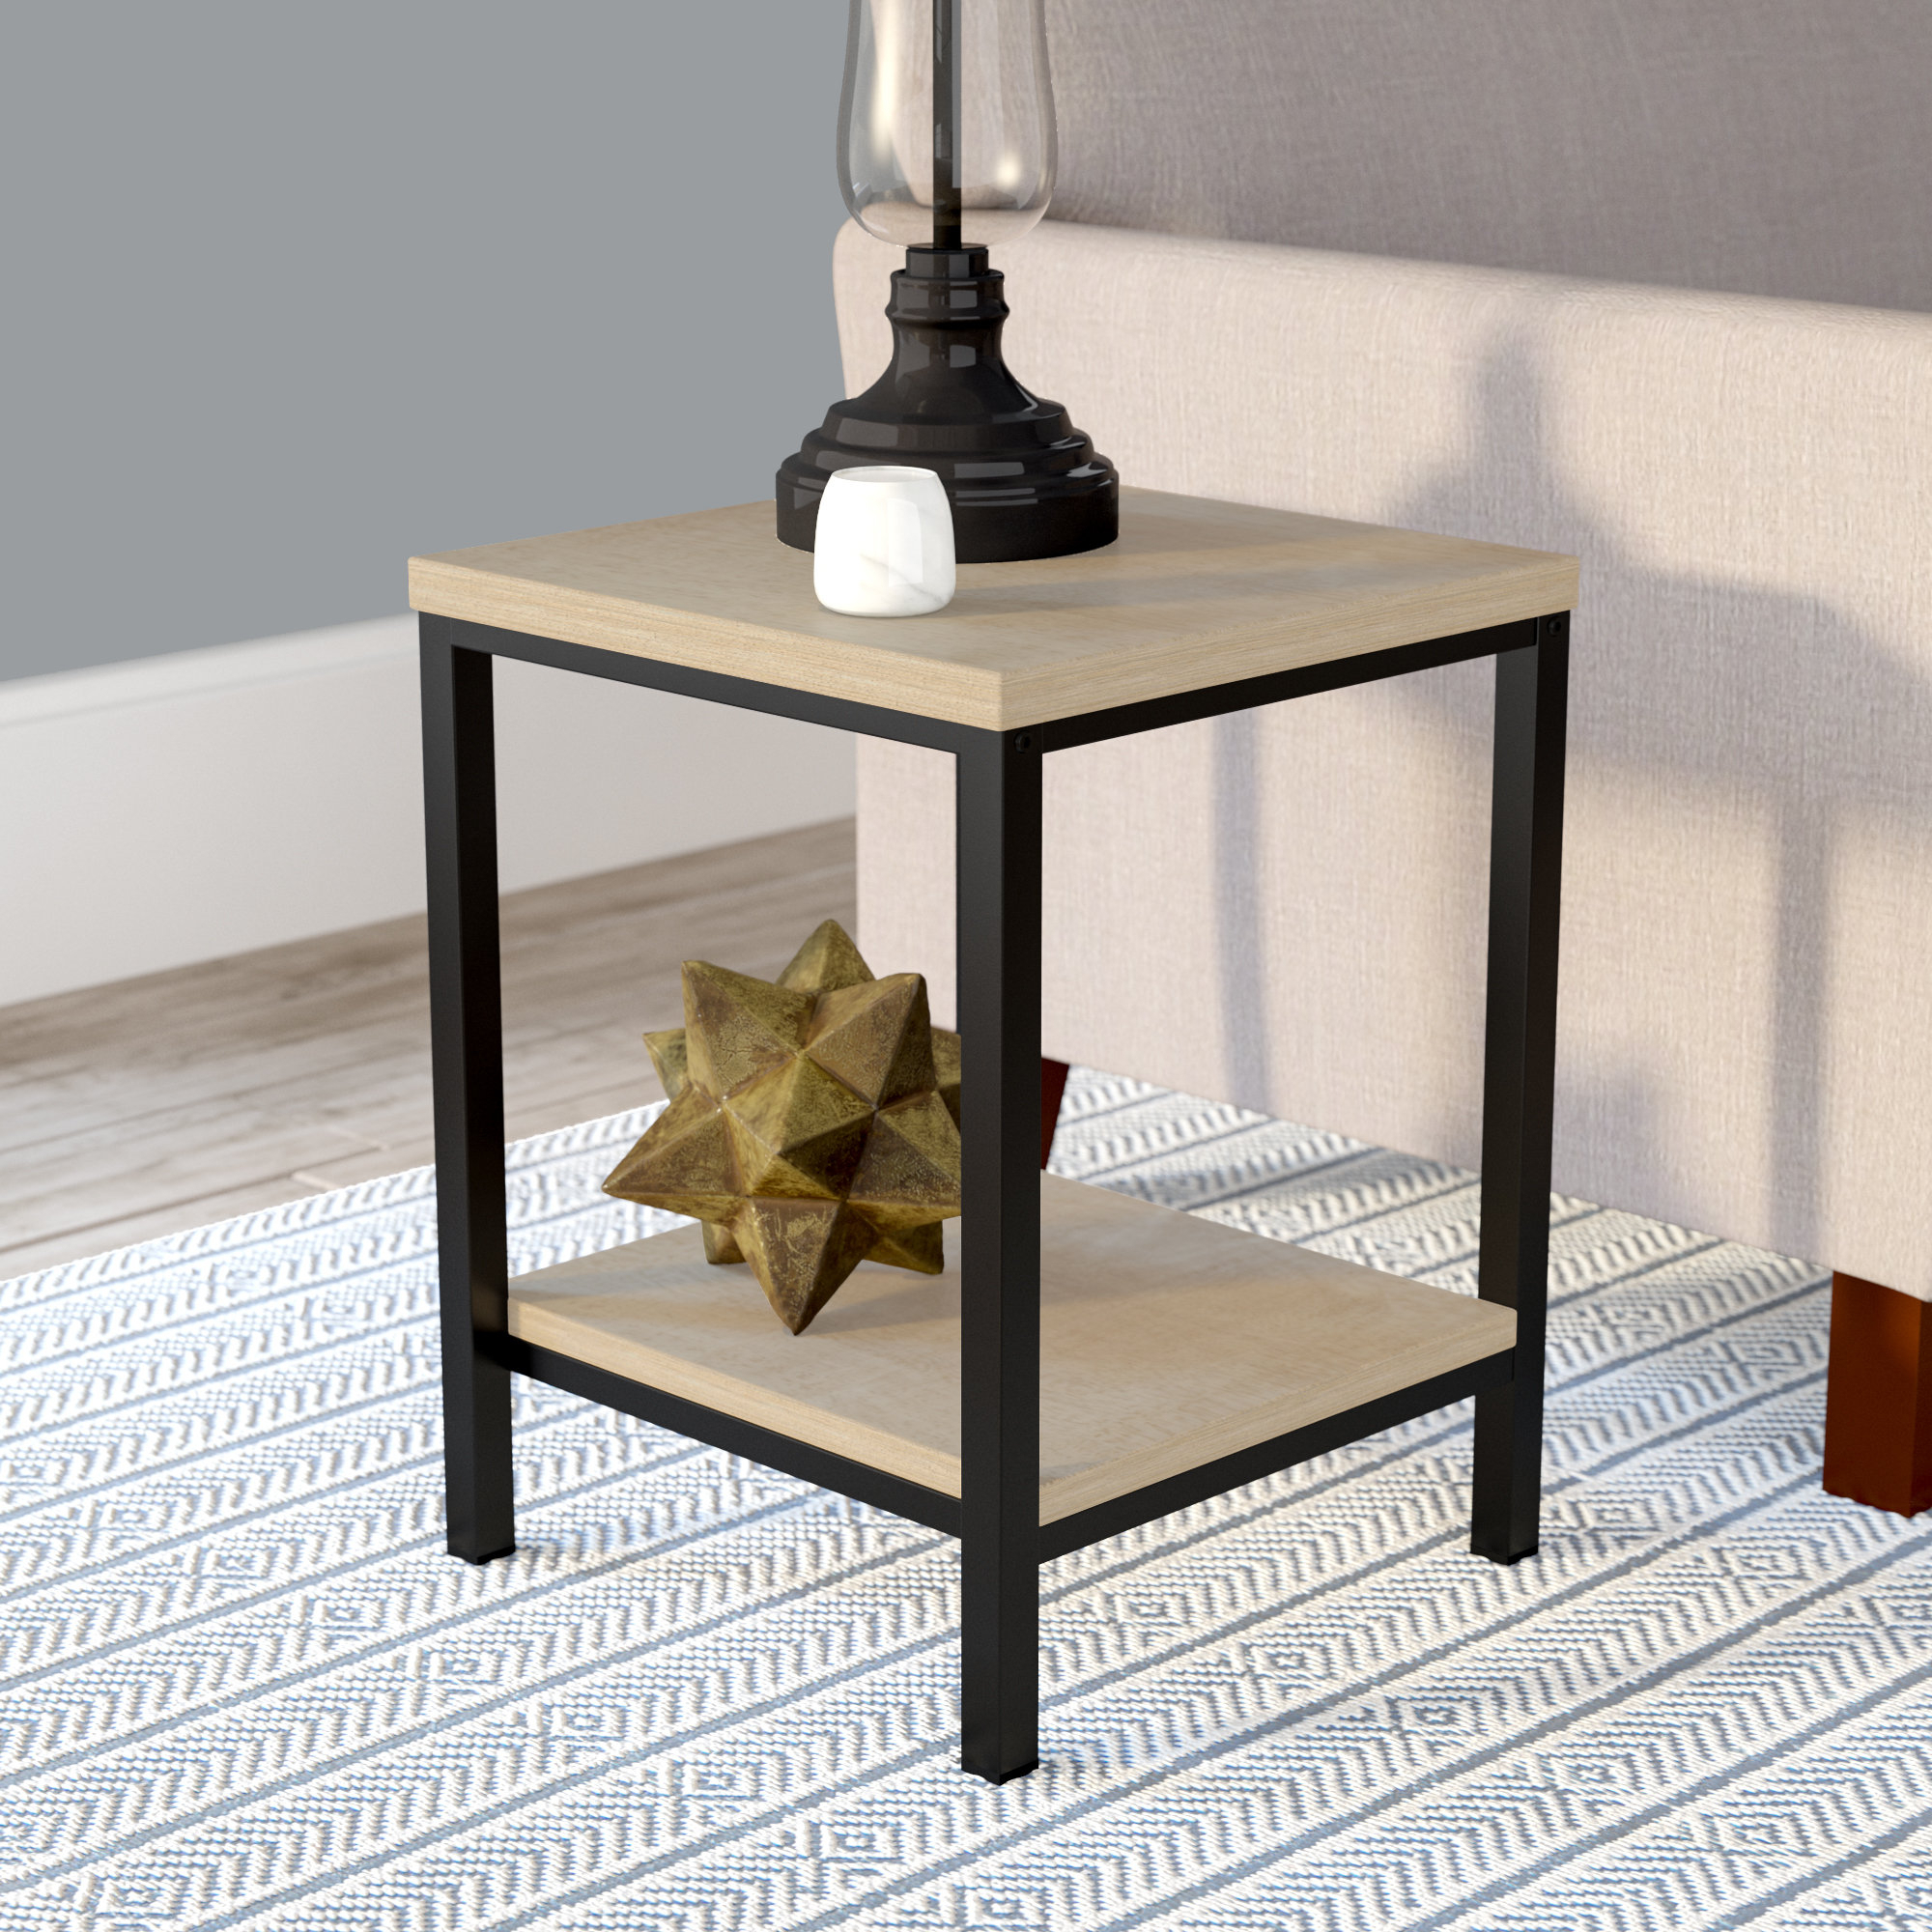 Wayfair Regarding Large Scale Chinese Farmhouse Coffee Tables (View 20 of 20)